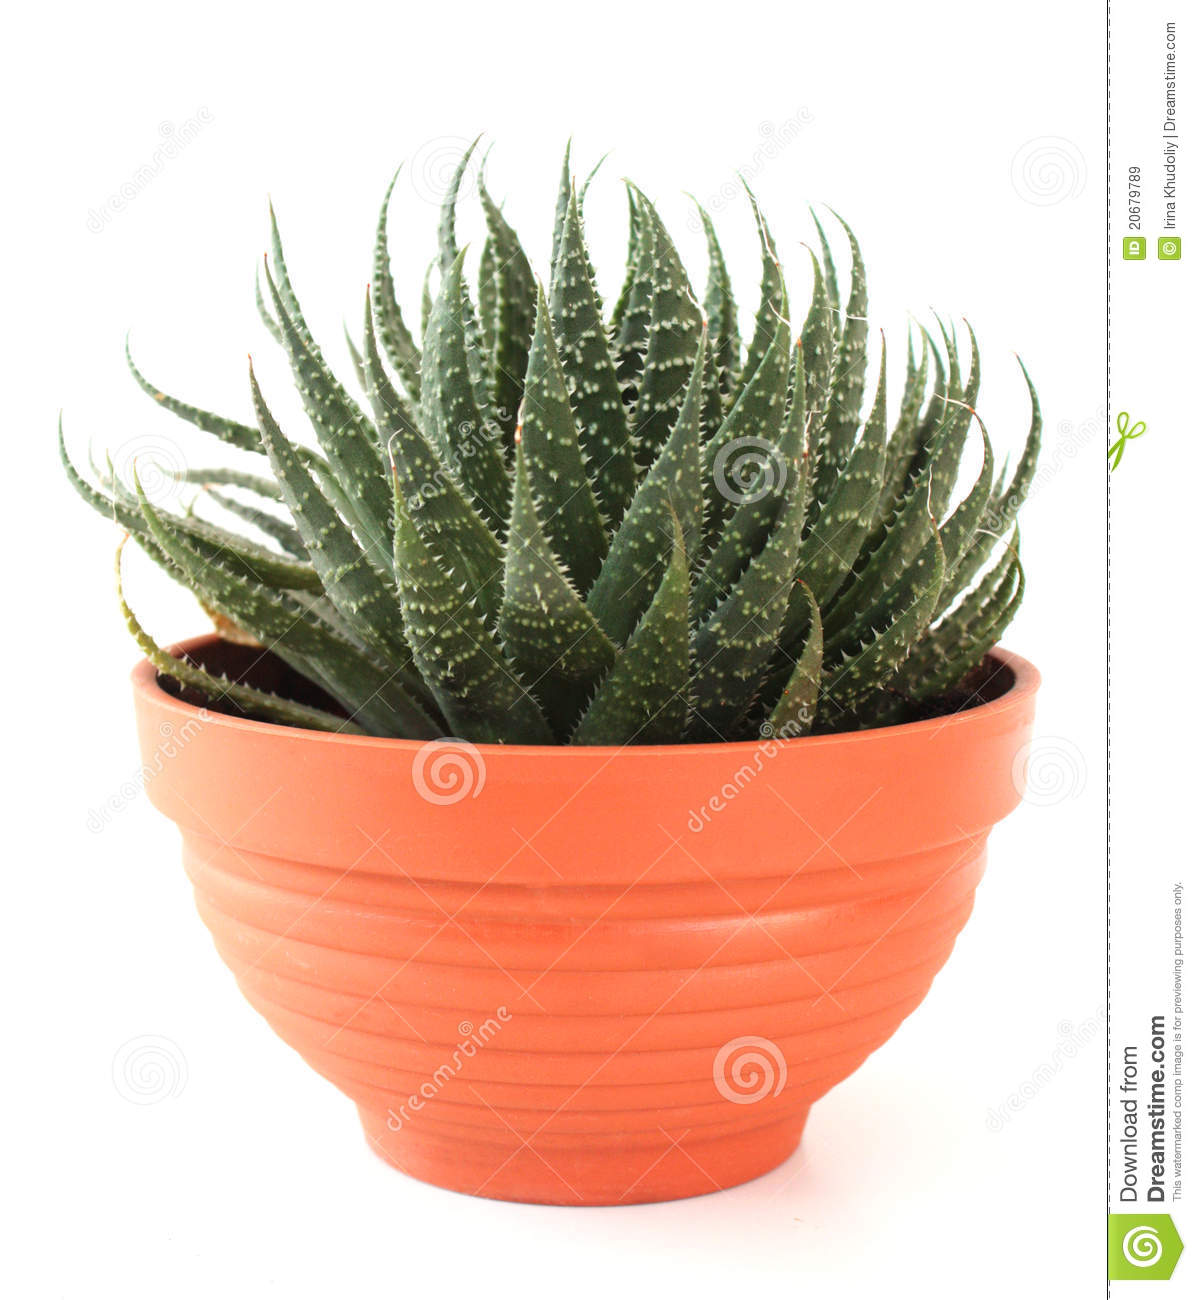 aloe vera in a pot royalty free stock images image. Black Bedroom Furniture Sets. Home Design Ideas